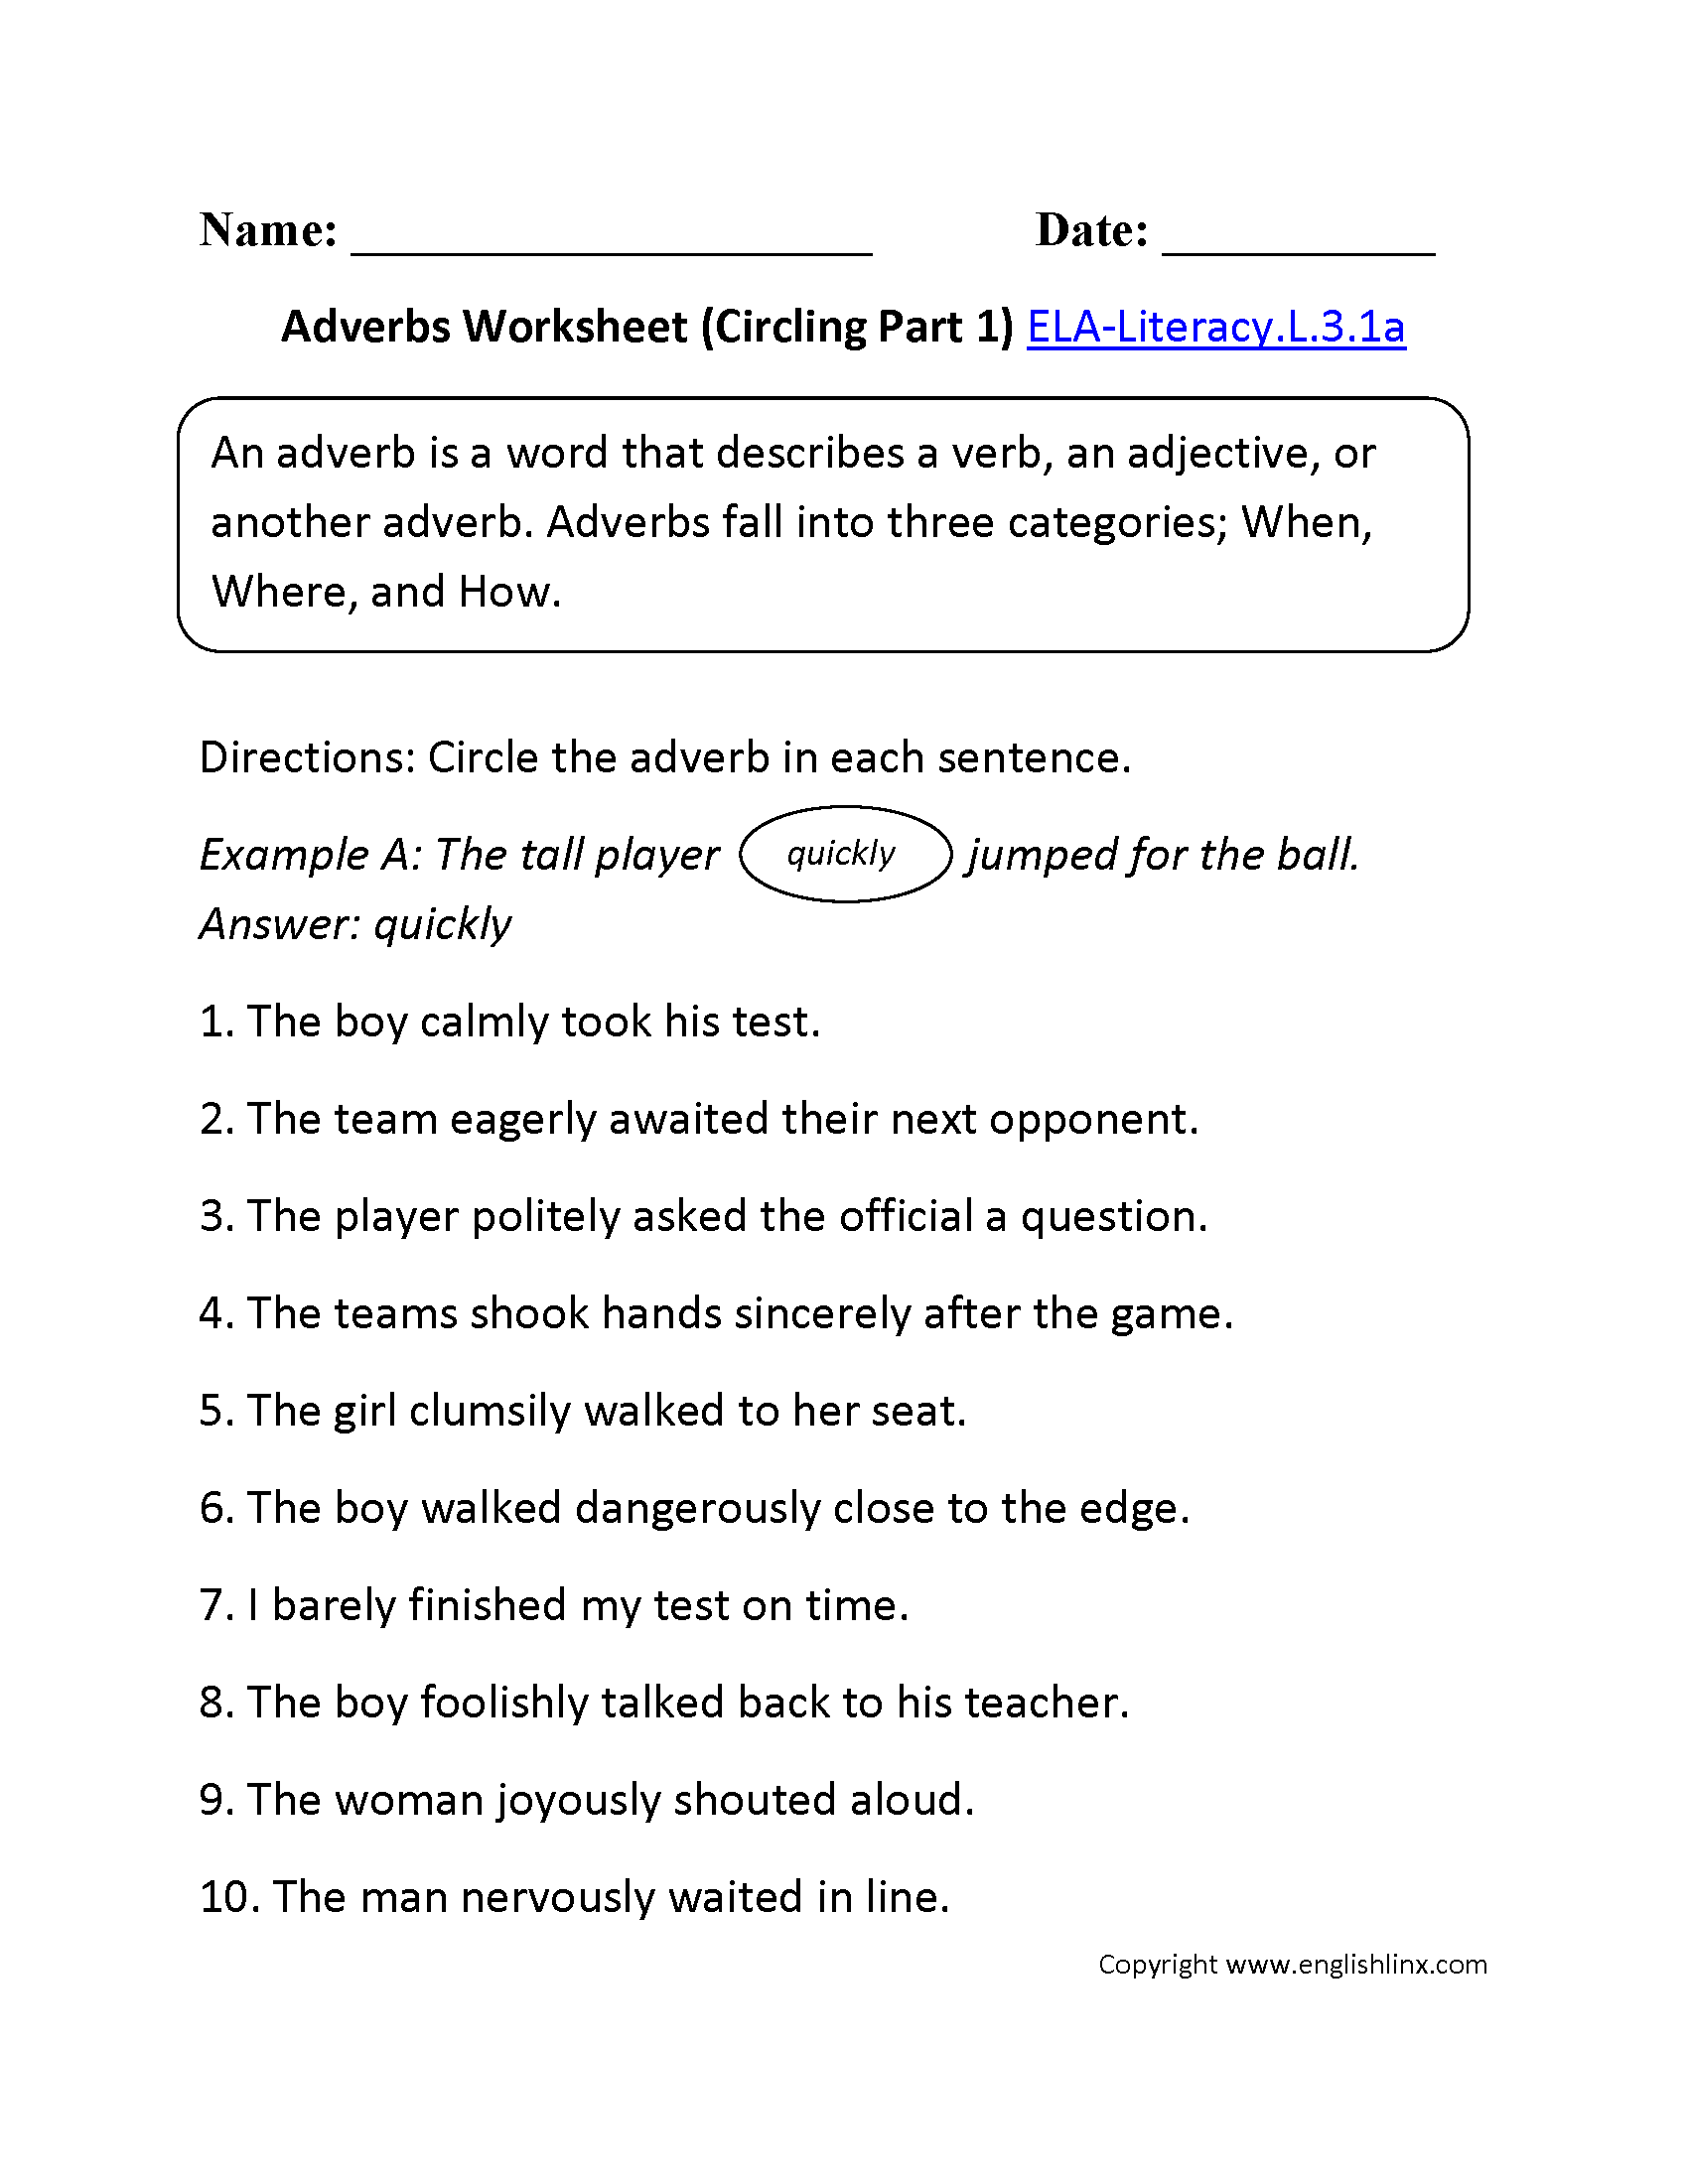 Adverbs Worksheet 1 Ela Literacy L 3 1a Language Worksheet